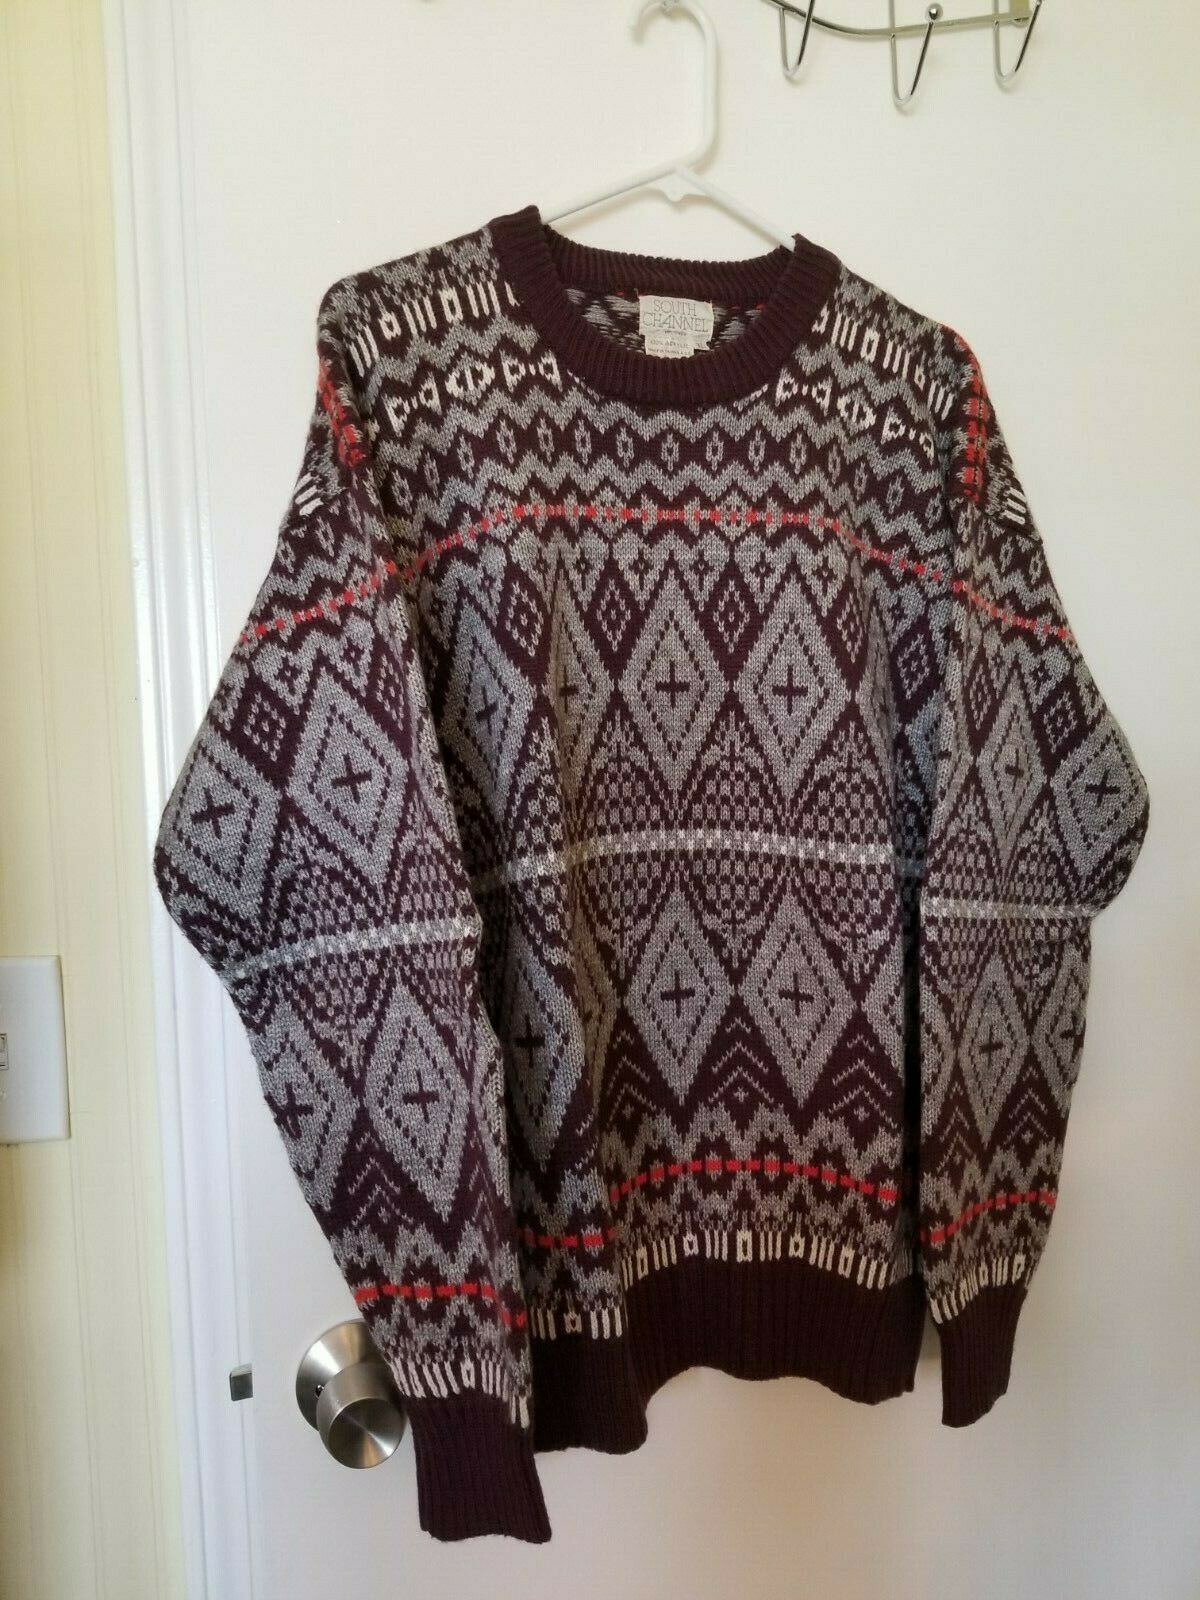 Vintage South Channel Pullover Ski Sweater Burgundy, Gray, Ivory, Red Sz XL